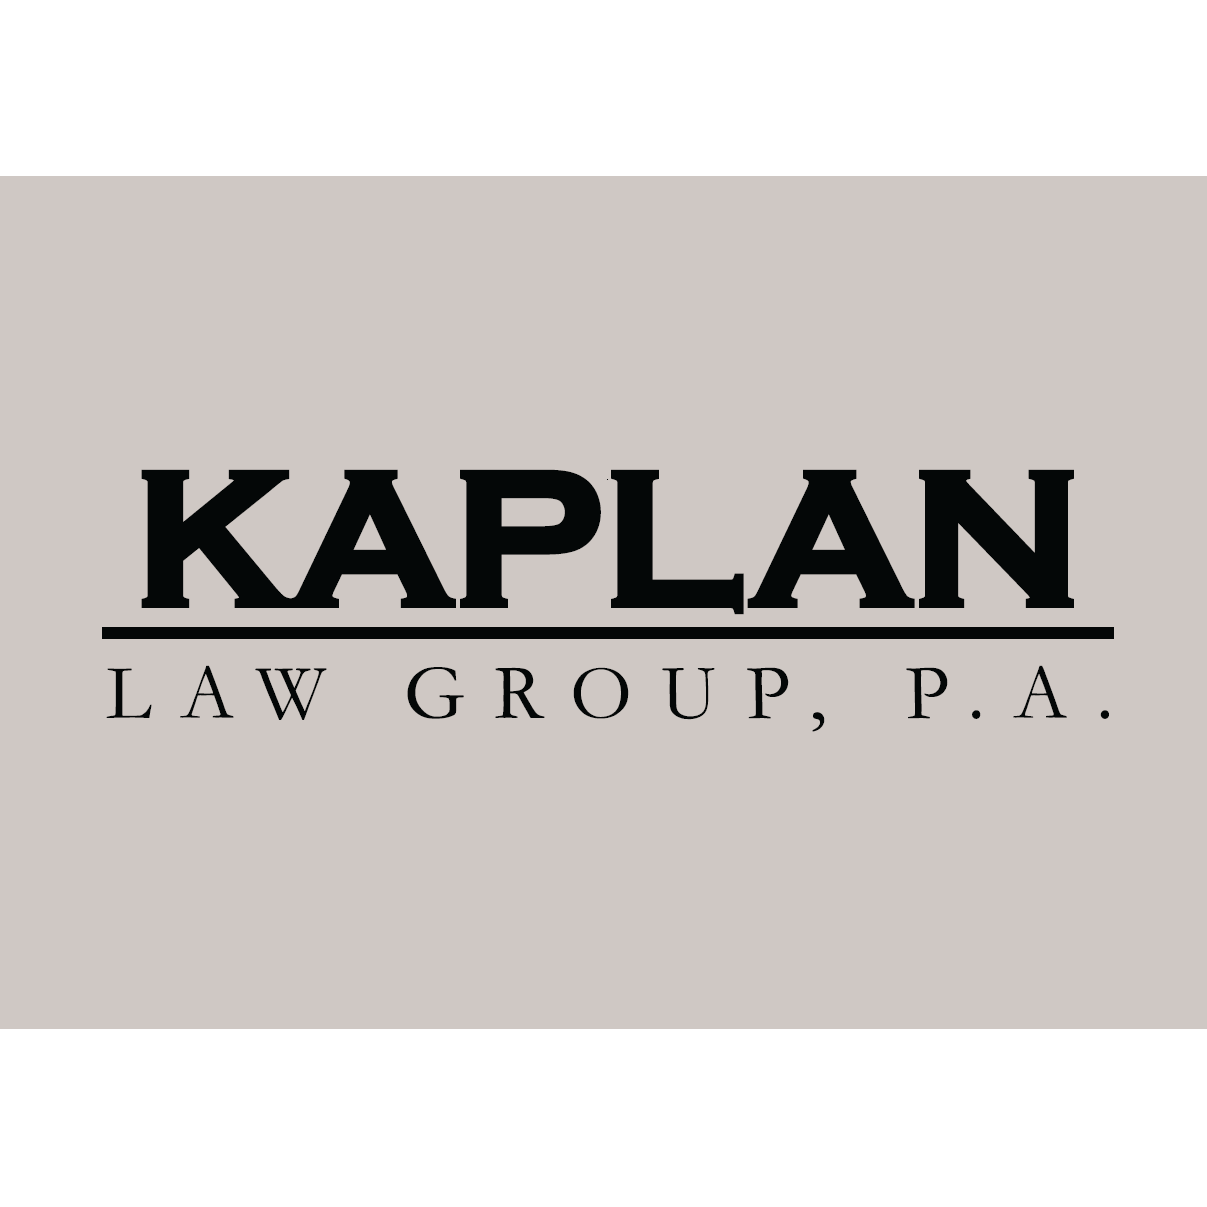 Kaplan Law Group, P.A.